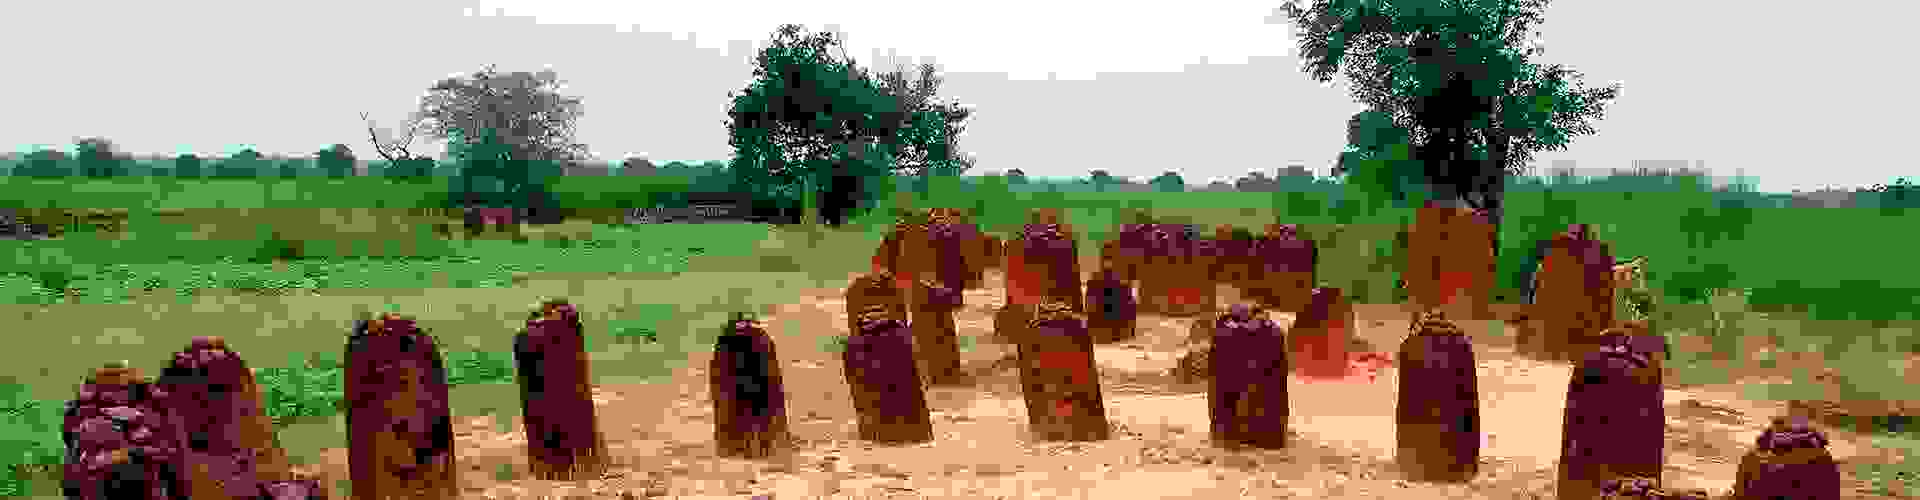 A-horizontal-image-of-the-Wassu-stone-circles-in-The-Gambia.jpg